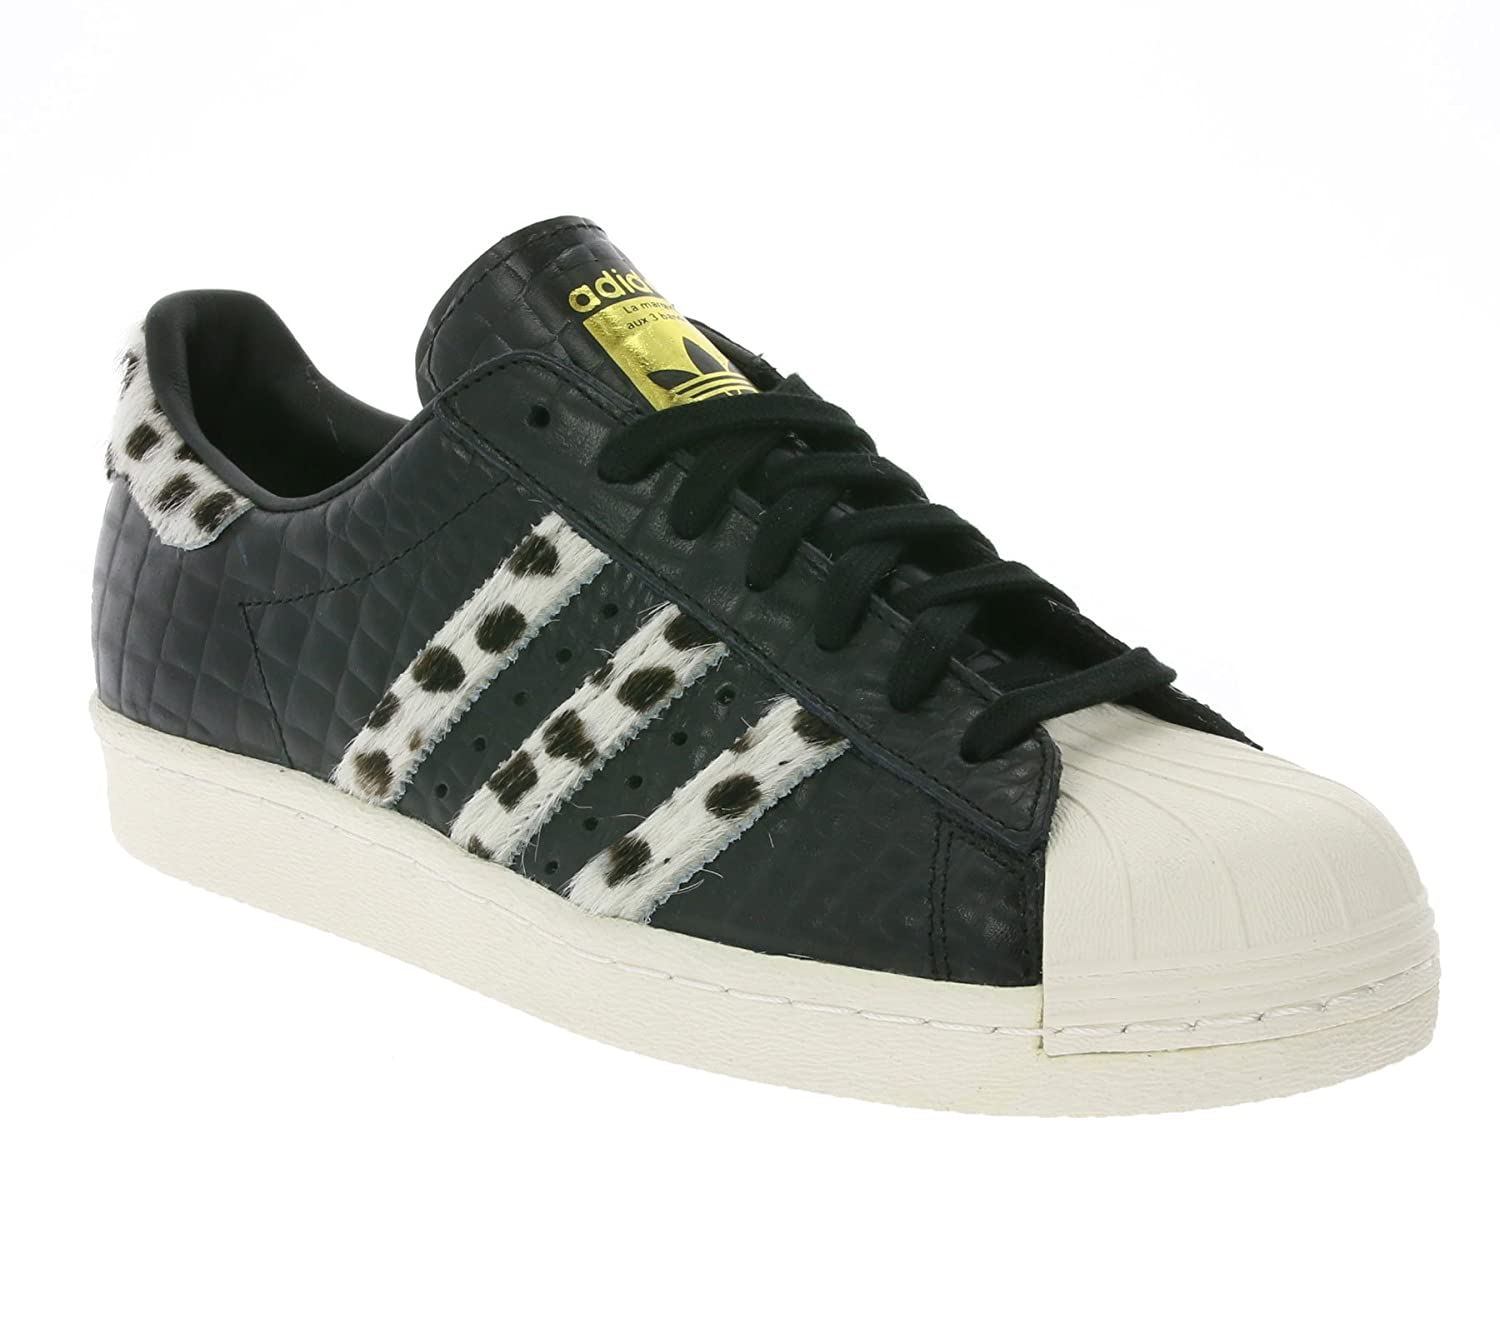 Whitegold Metallic Adidas Superstar Blackchalk 80s AnimalCore cARLqj453S